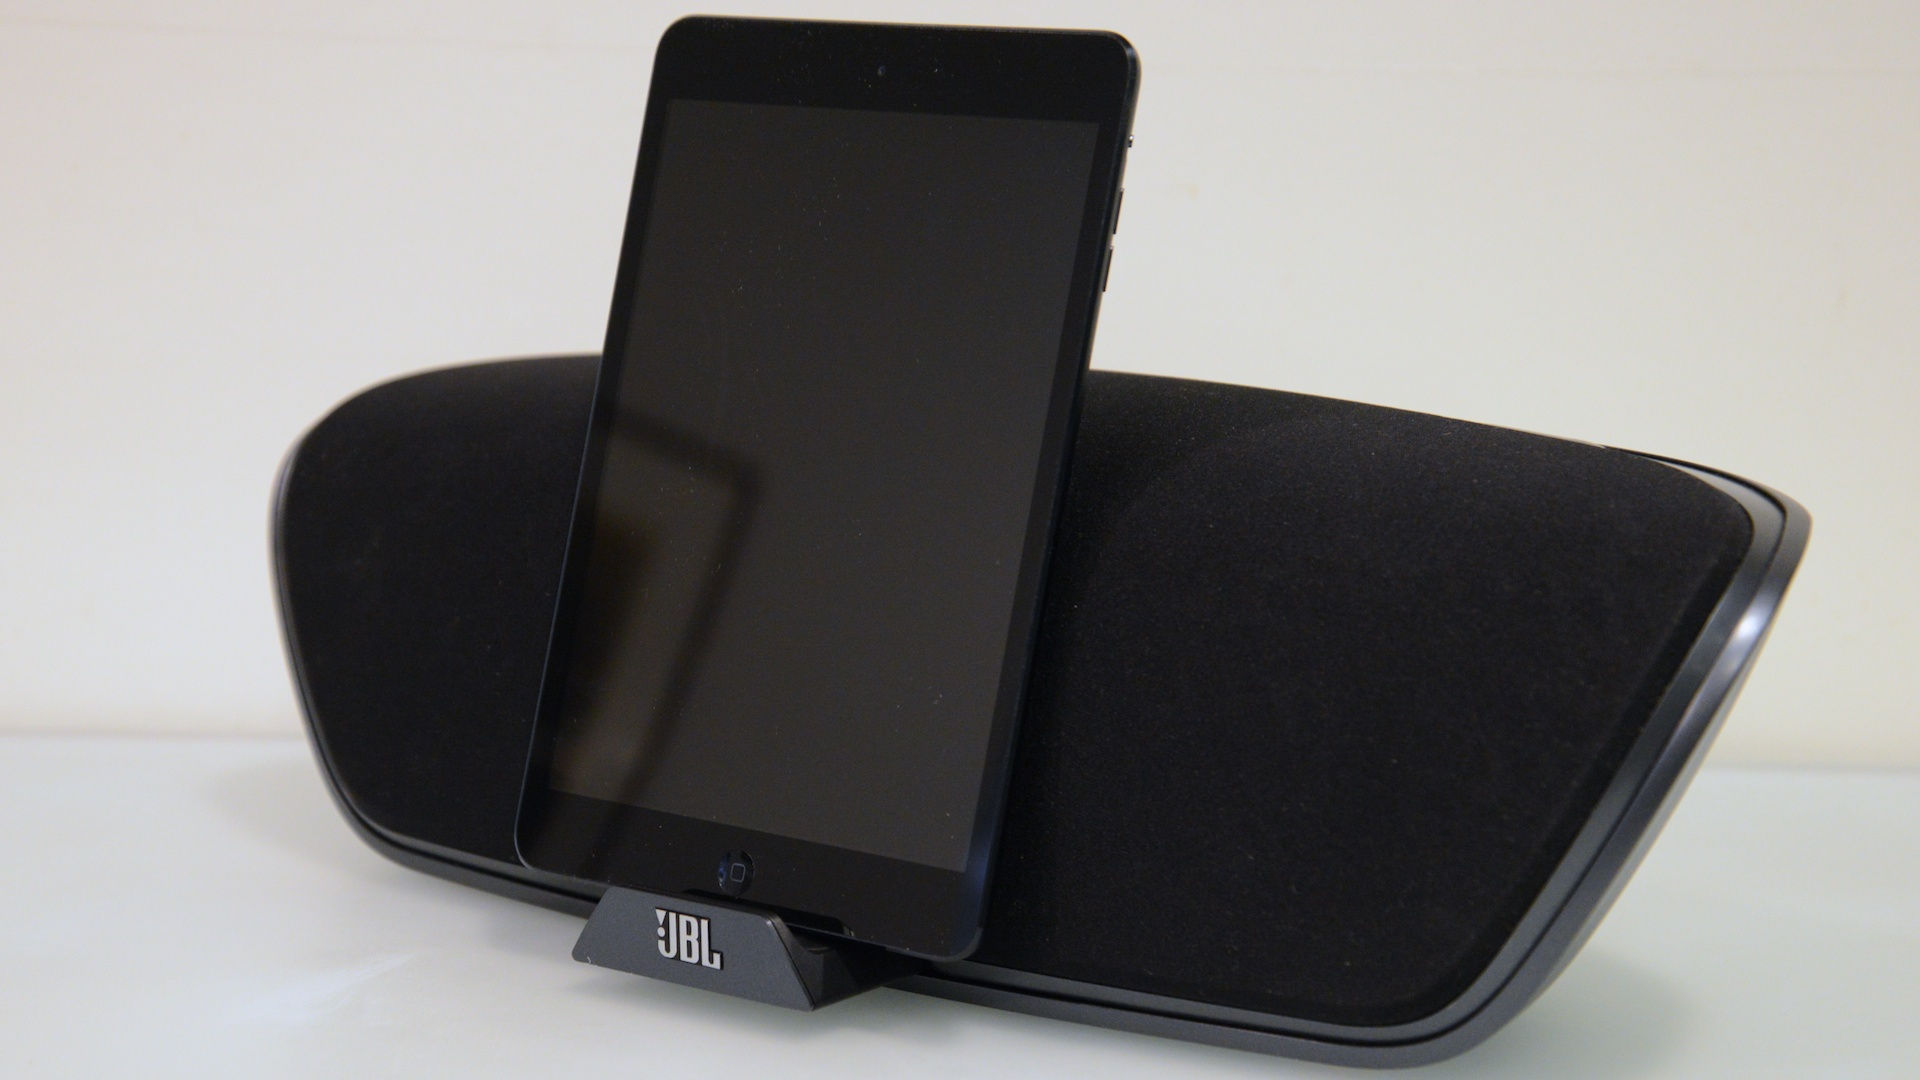 Click here to read JBL iPhone 5 Speaker Docks Hands-On: Lightning Finally Finds a Friend